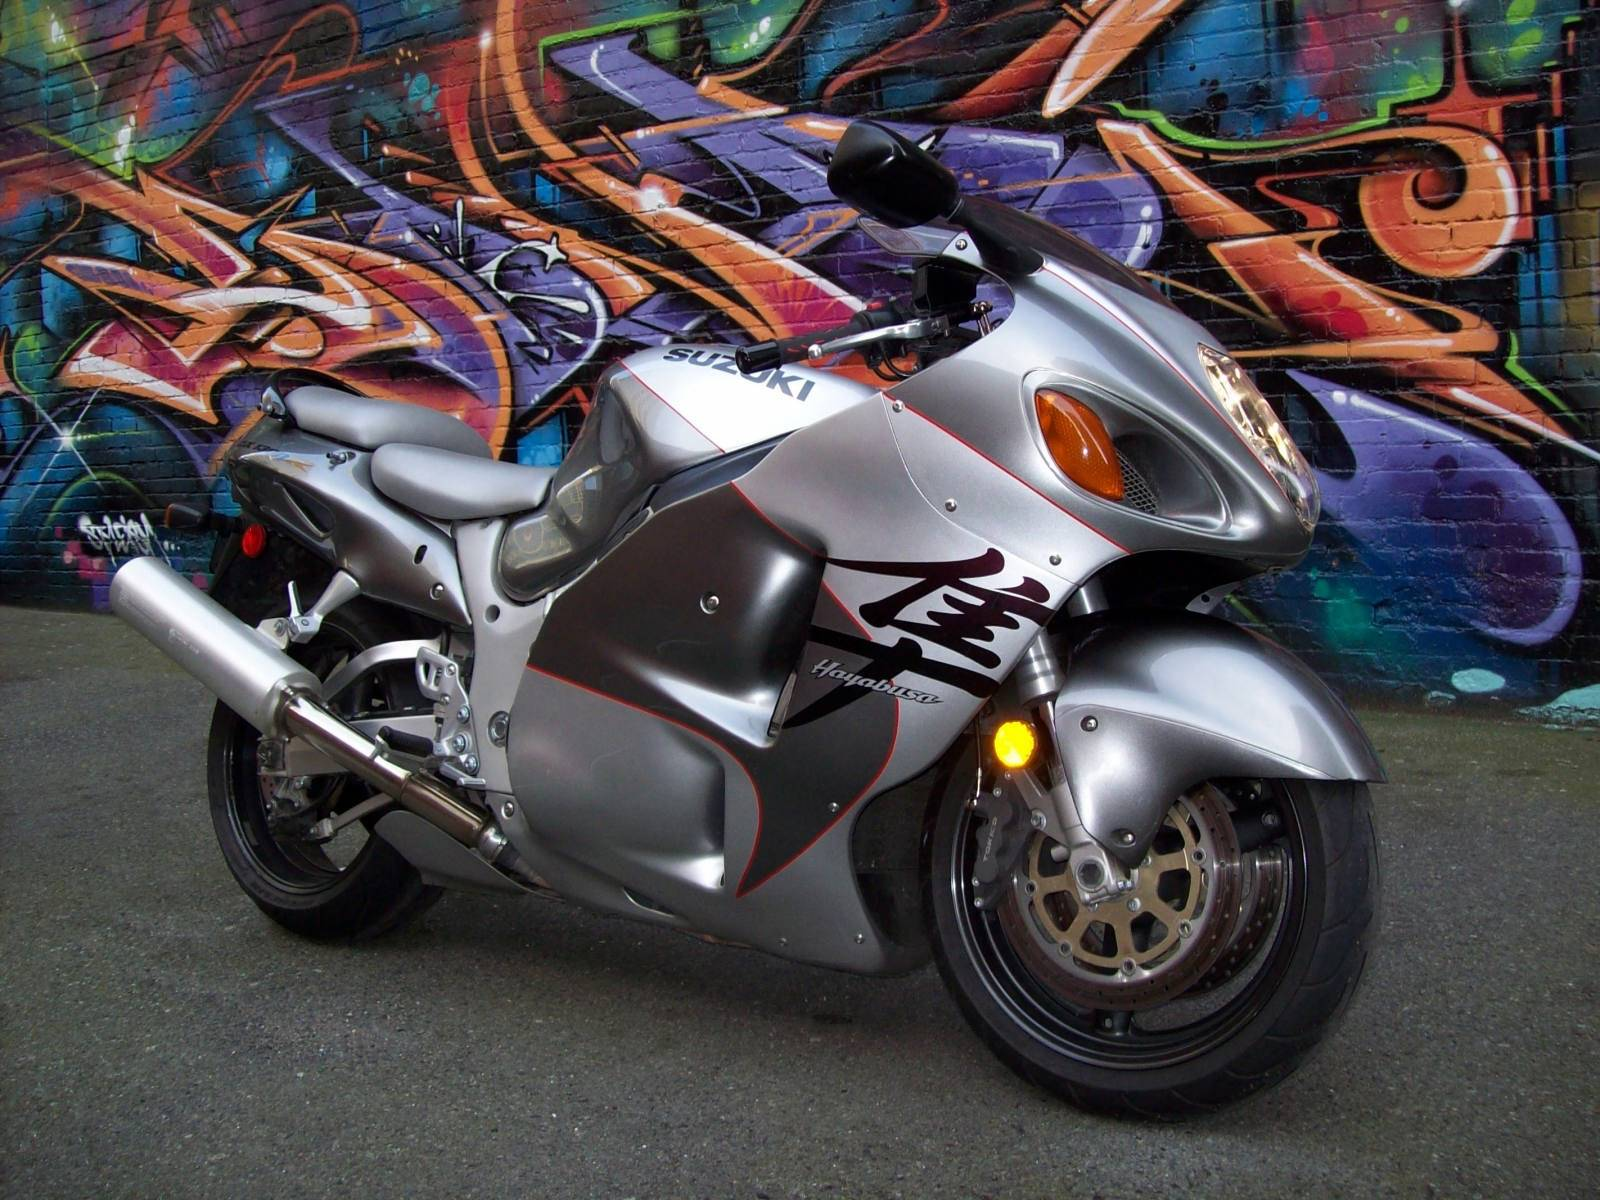 Sport Bike Wallpaper Desktop Backgrounds: Sports Bike HD Wallpaper